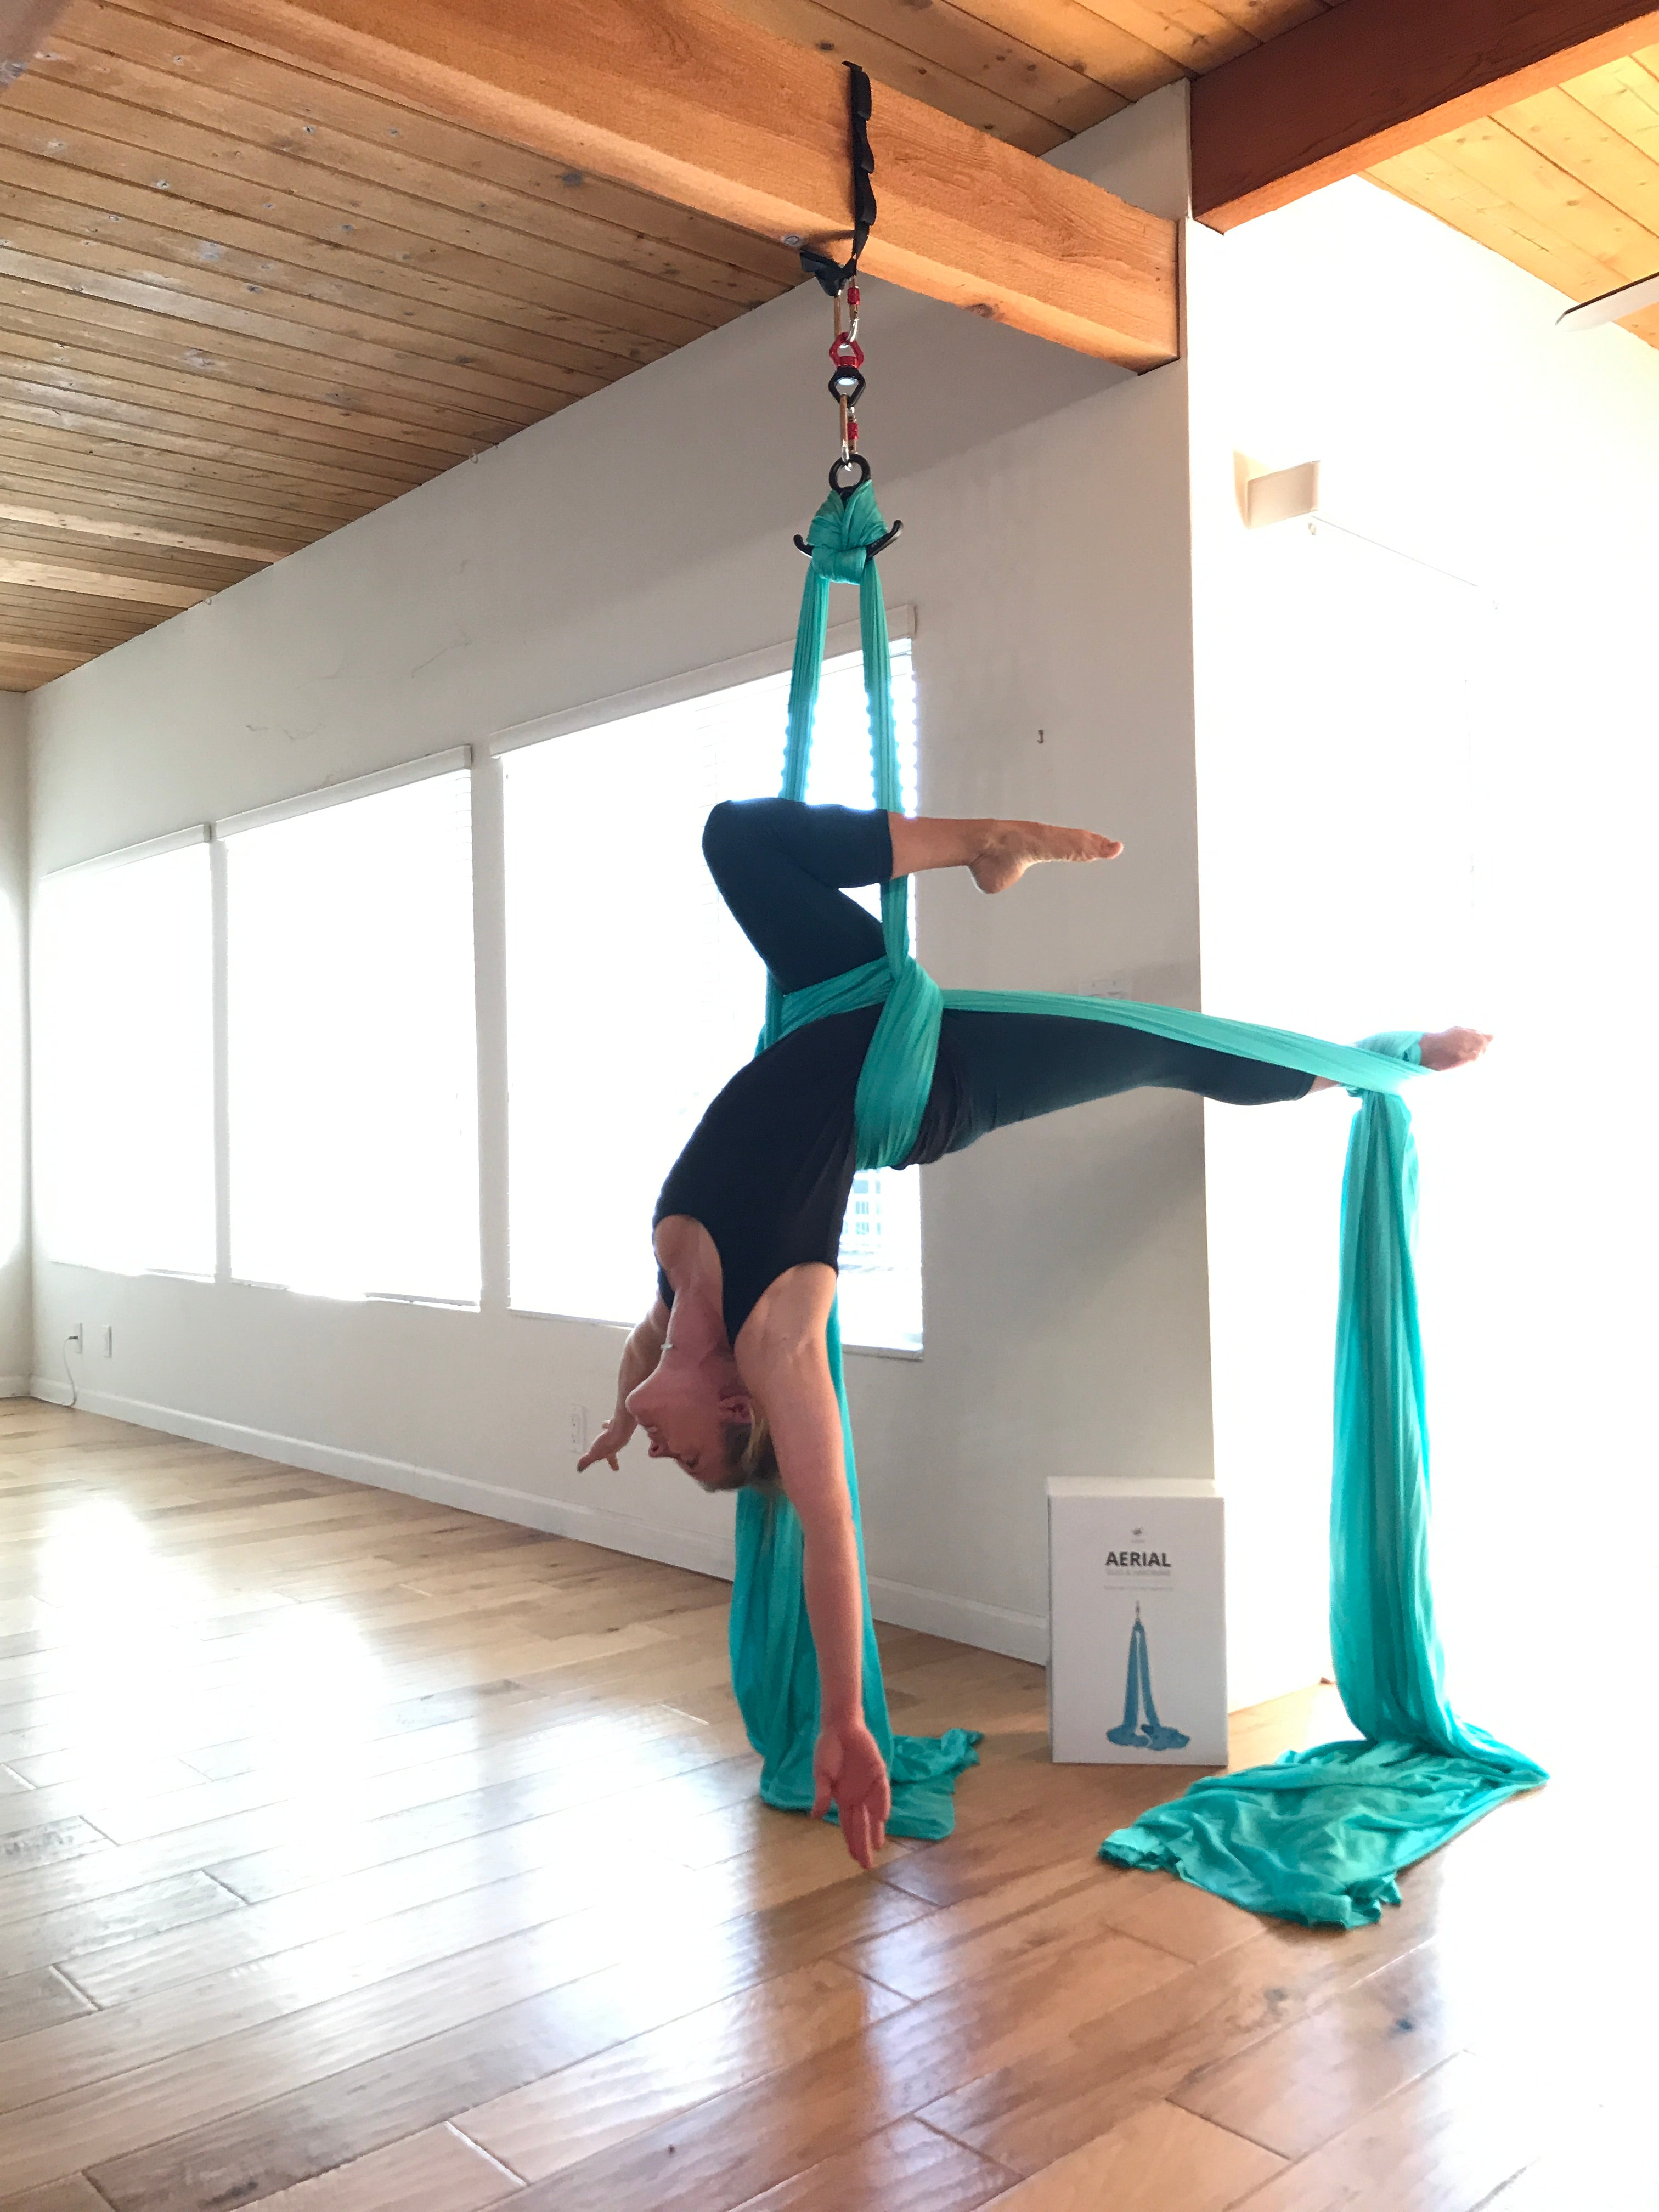 Hanging Aerial Silks from an exposed beam at home